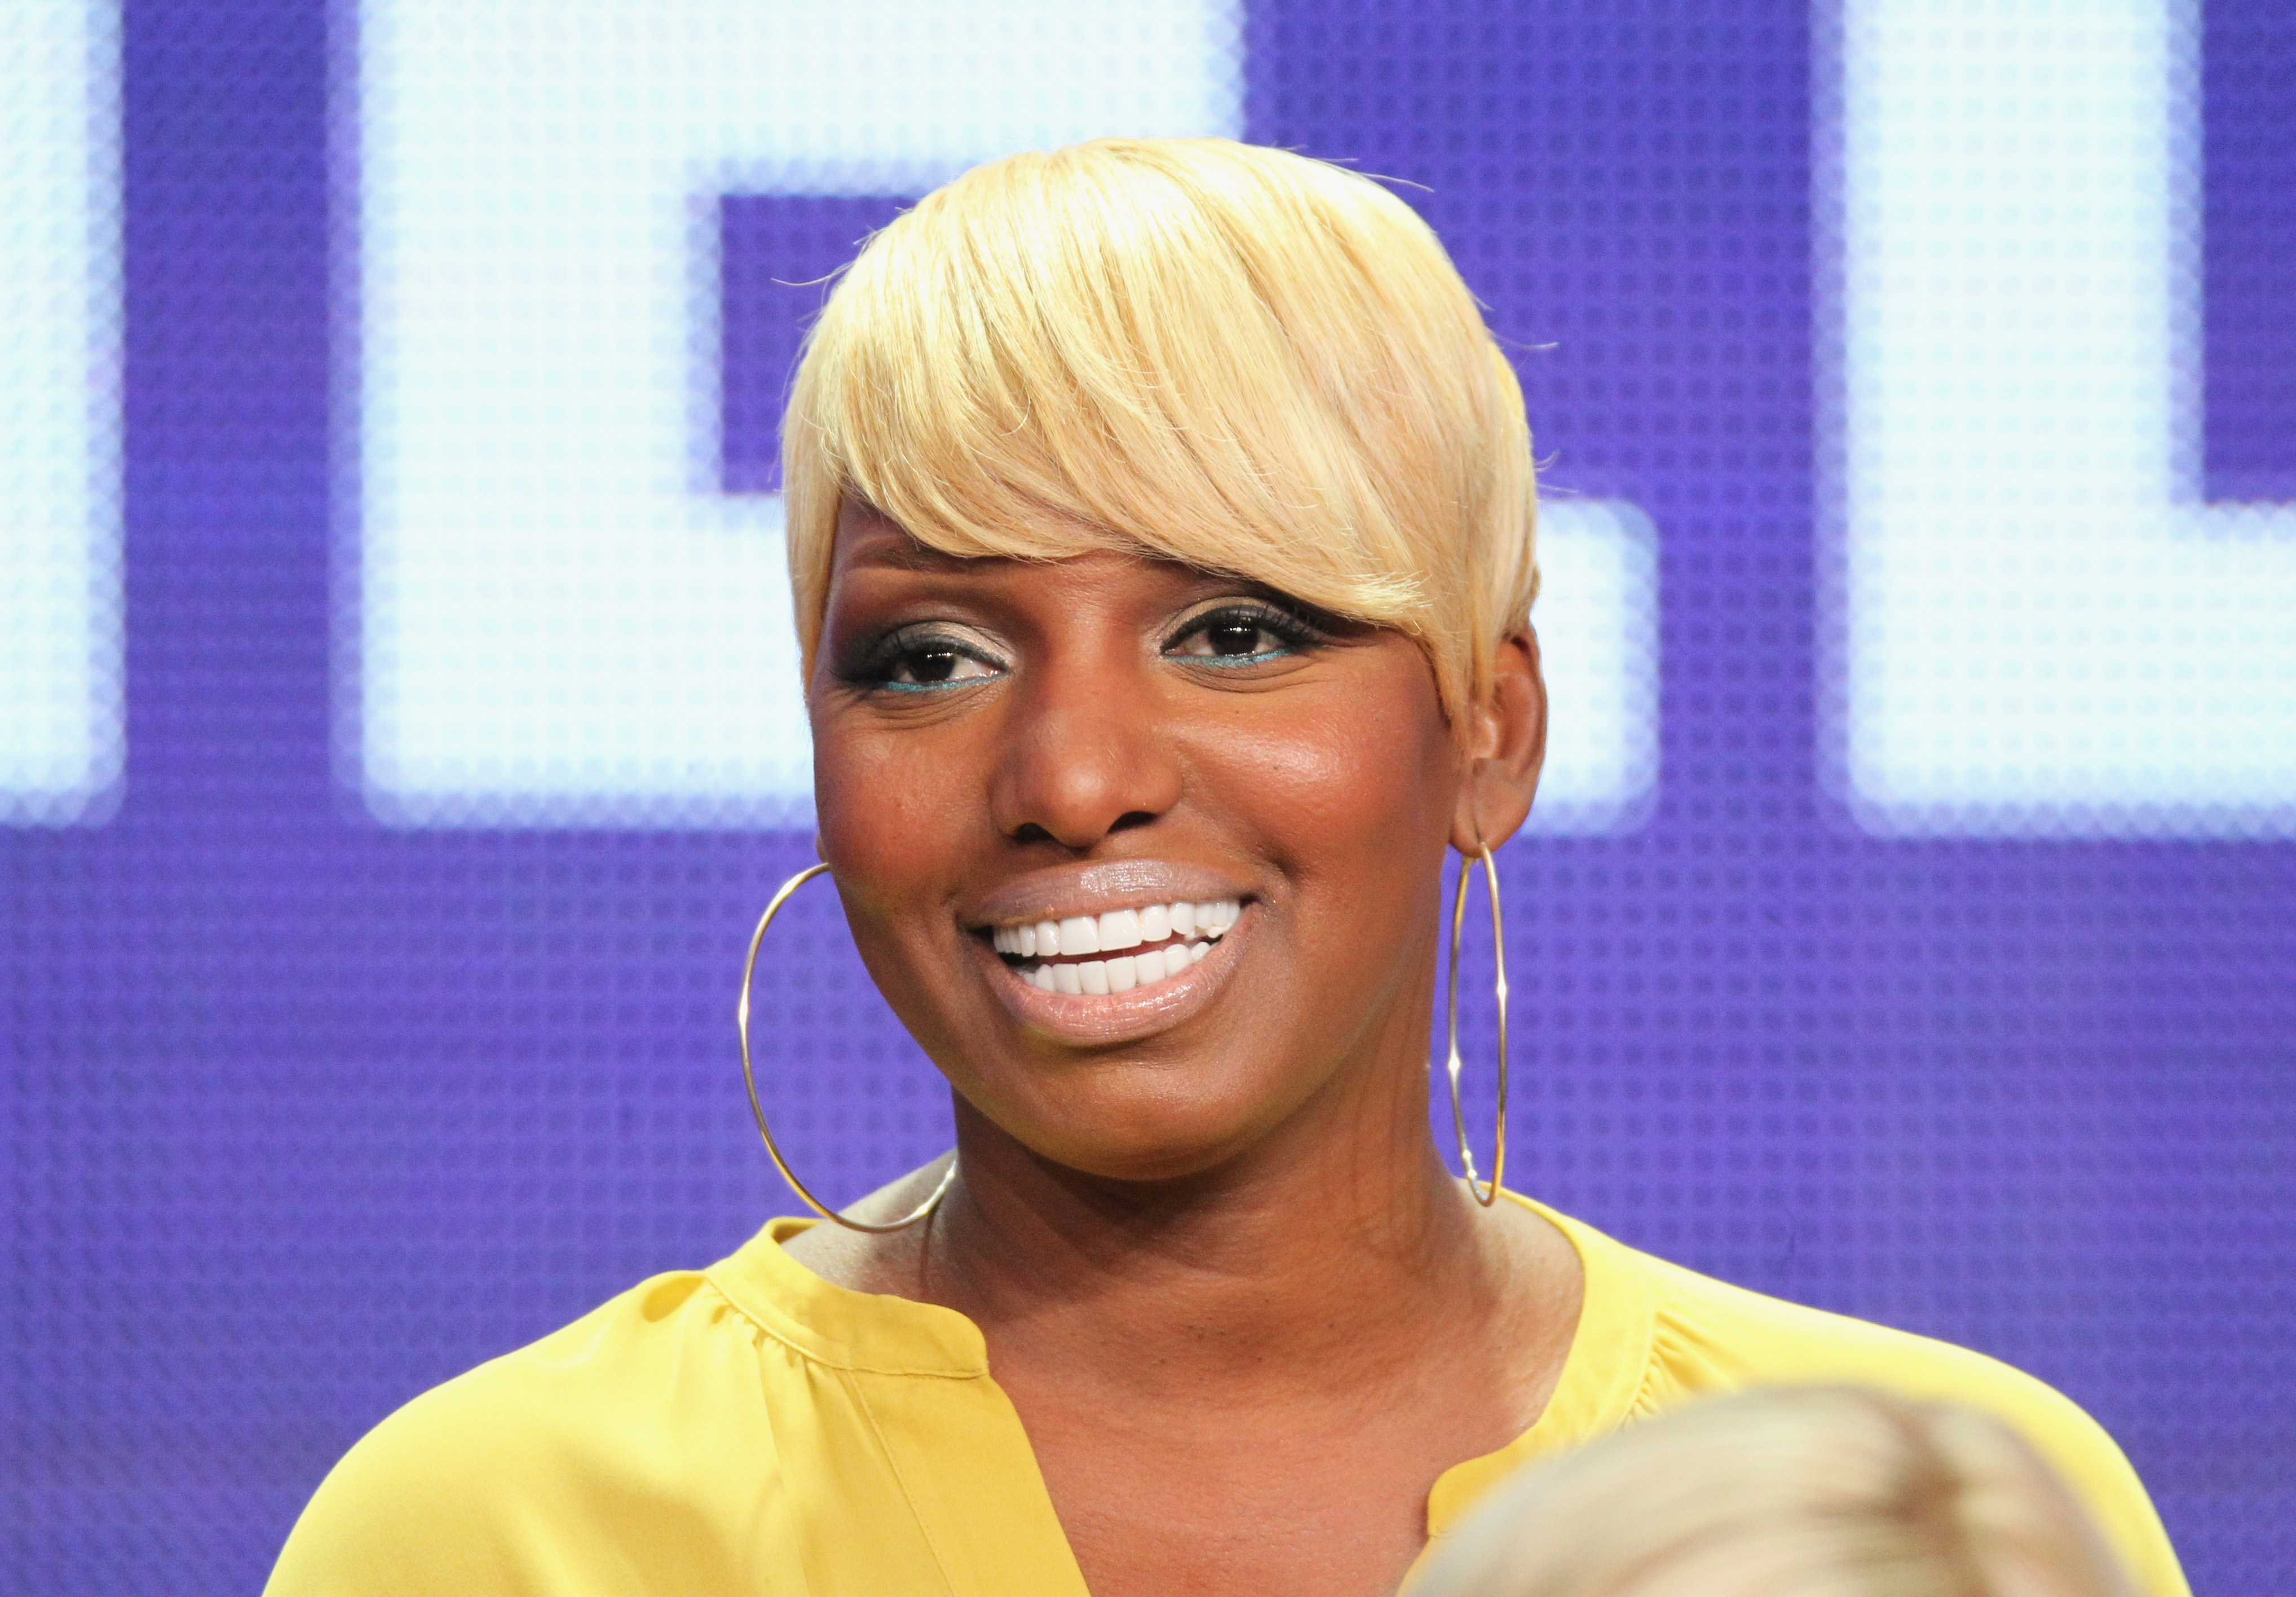 Nene Leakes (The Real Housewives of Atlanta) stars in The New Normal.